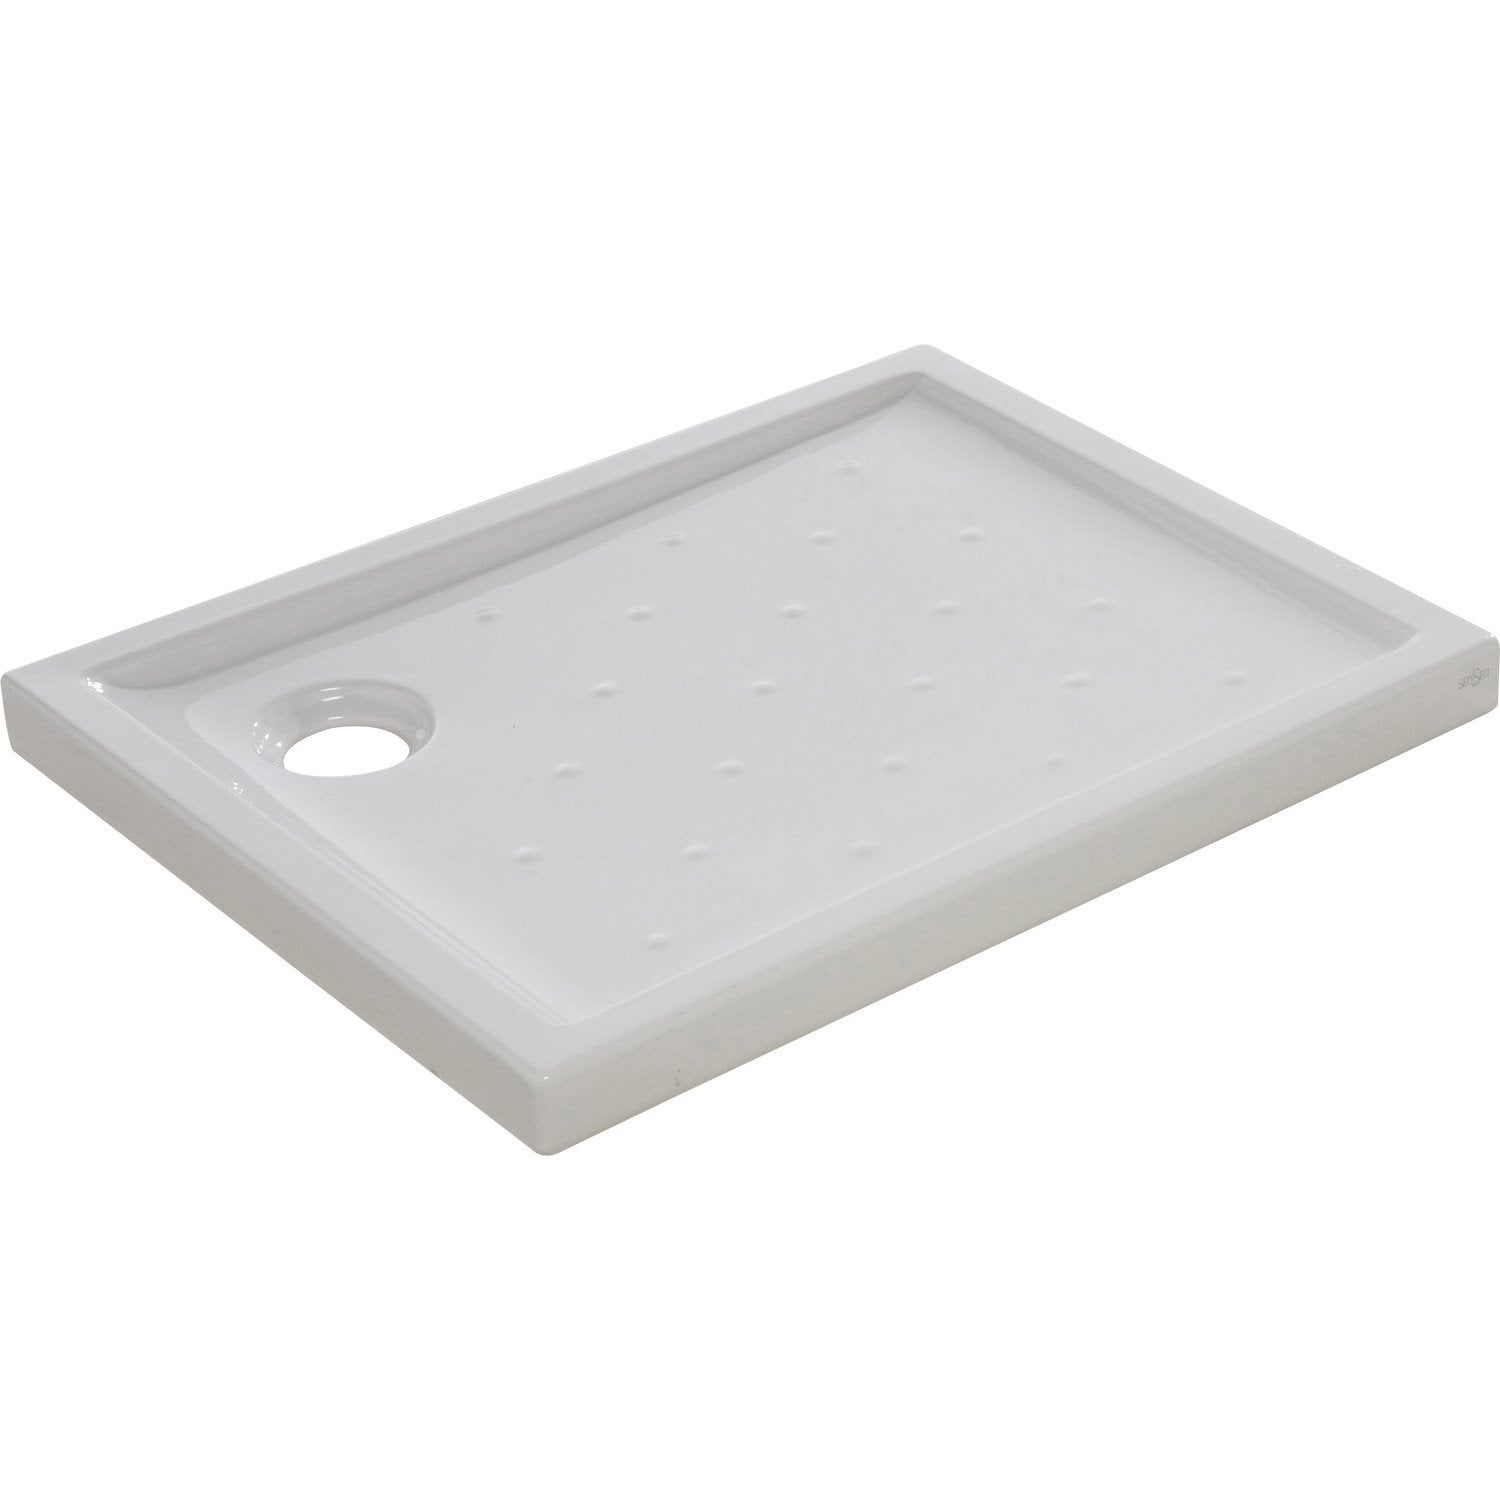 Receveur de douche rectangulaire x cm gr s for Carrelage 80 x 80